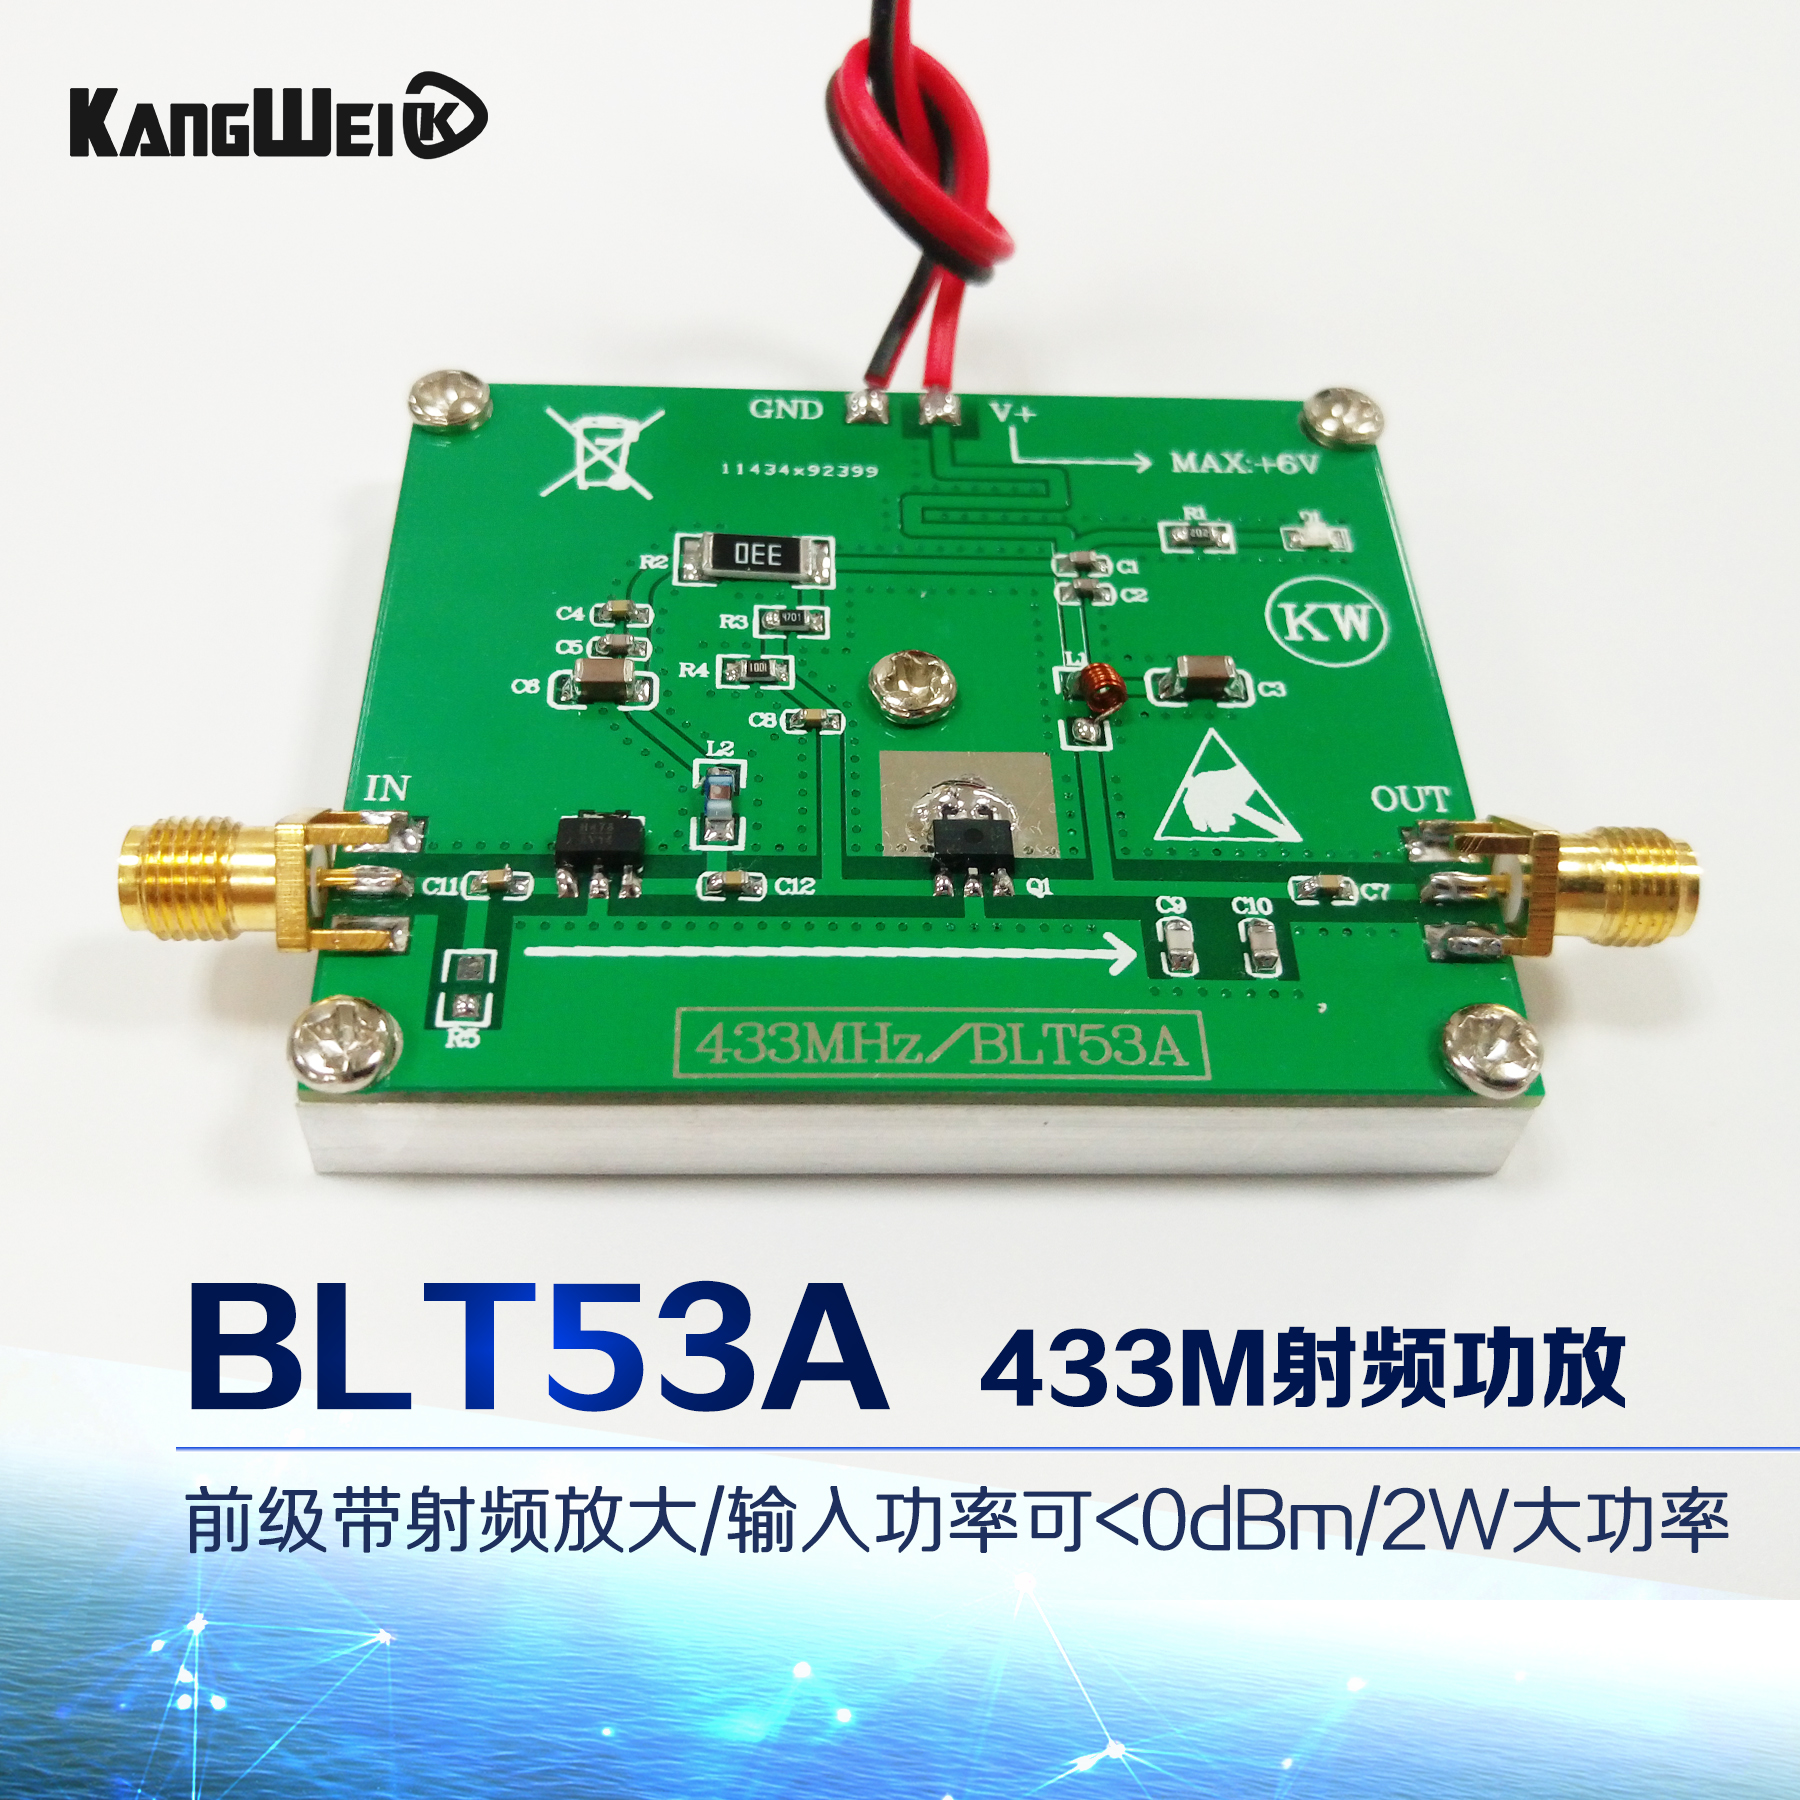 BLT53A 433M RF power amplifier 2W SI4432 digital transmission moduleBLT53A 433M RF power amplifier 2W SI4432 digital transmission module